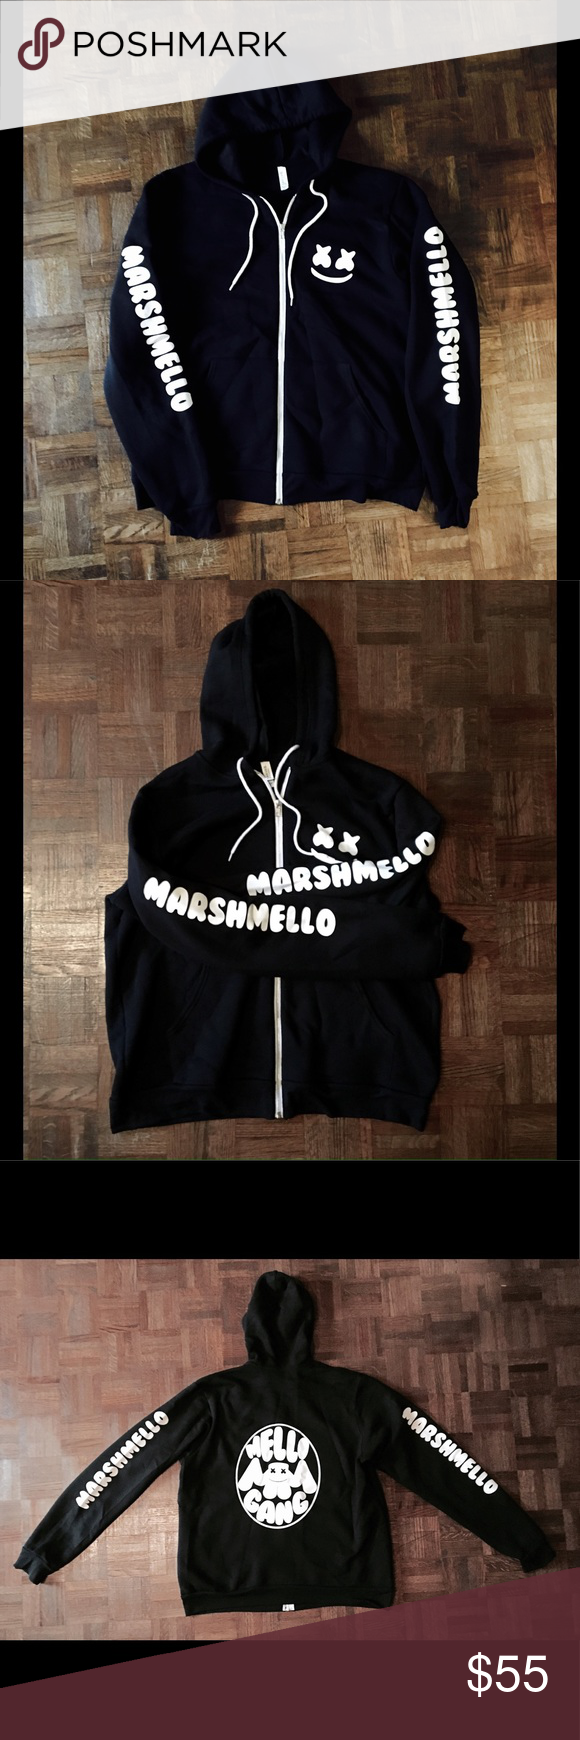 Marshmello MELLOGANG Black   White Custom Hoodie XL High End Black  Long-Sleeve Hoodie with White Full Zipper Down Front   A White Pull String. 5b2c8c3e5cc